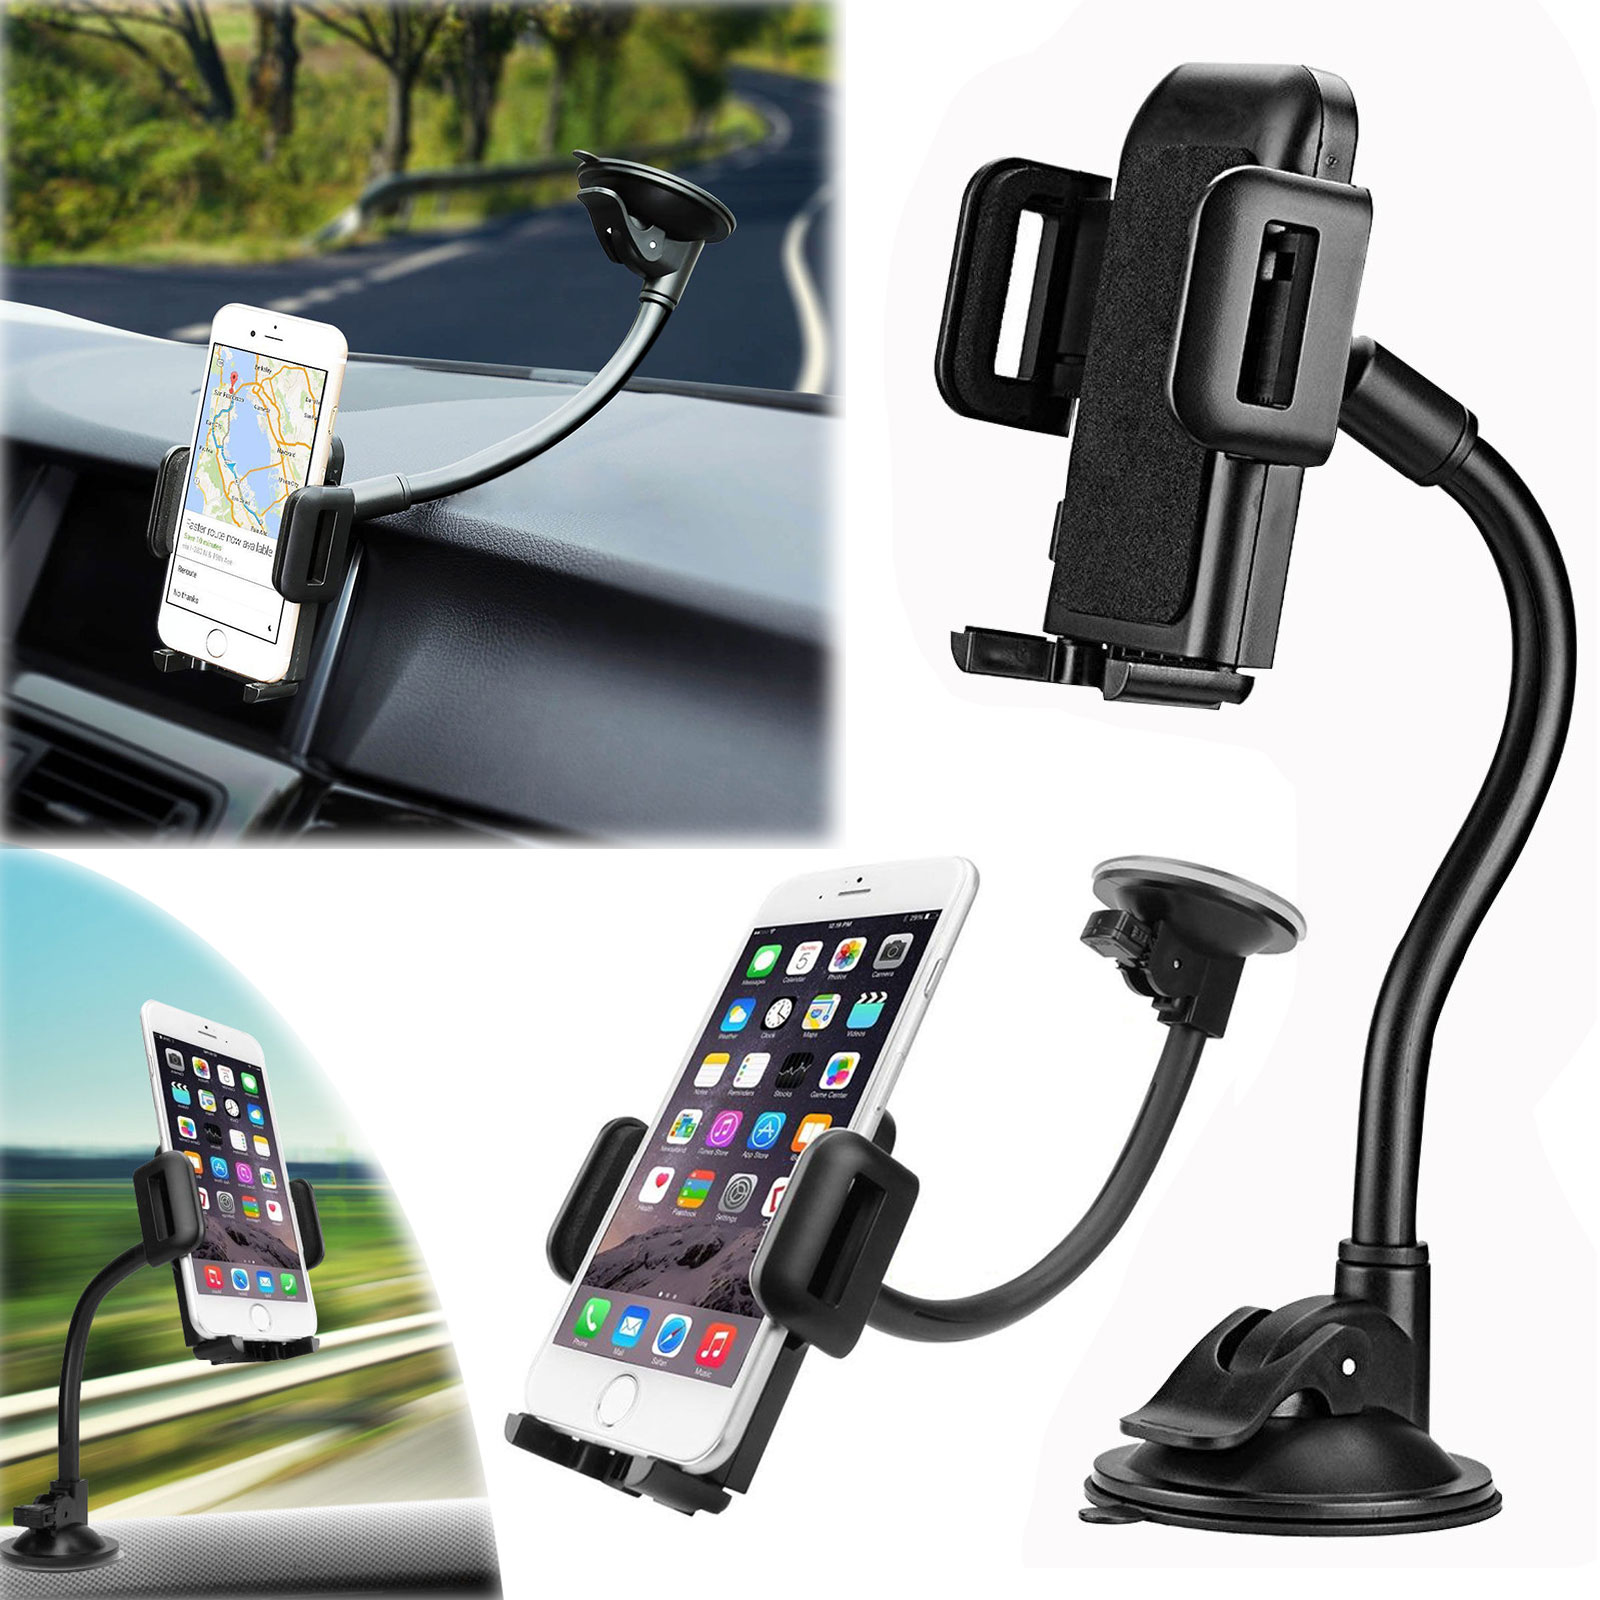 Car Mount, 360 Degree Universal Windshield Dashboard Long Arm Car Phone Holder for iPhone X/8/7/6S/6 Plus, Samsung Galaxy S9/S8 Plus, Nexus 5X/6P, LG, HTC and All 4-6 inch Smartphones